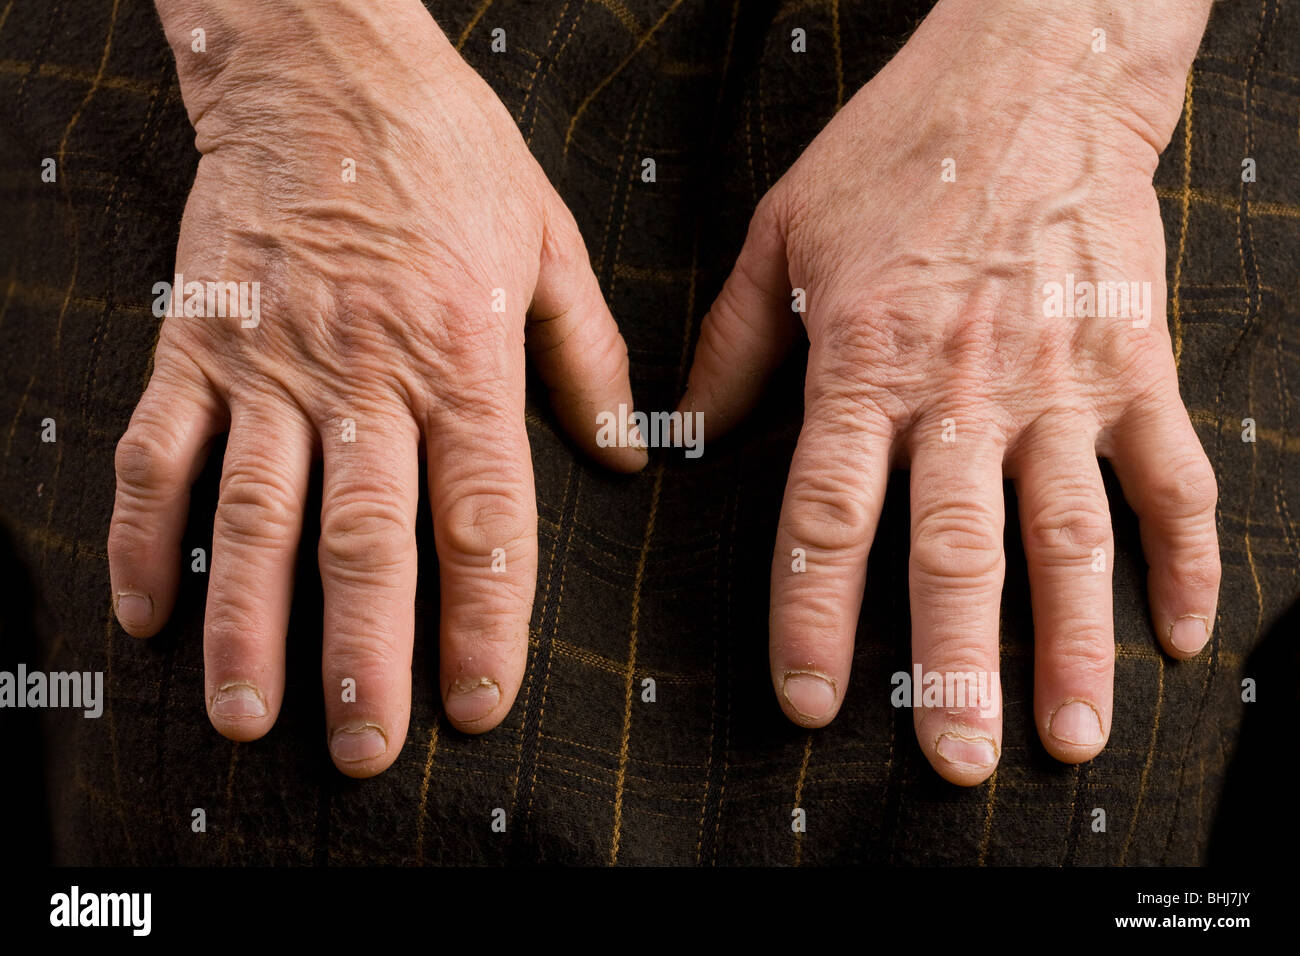 Close up of an old woman's hands - Stock Image